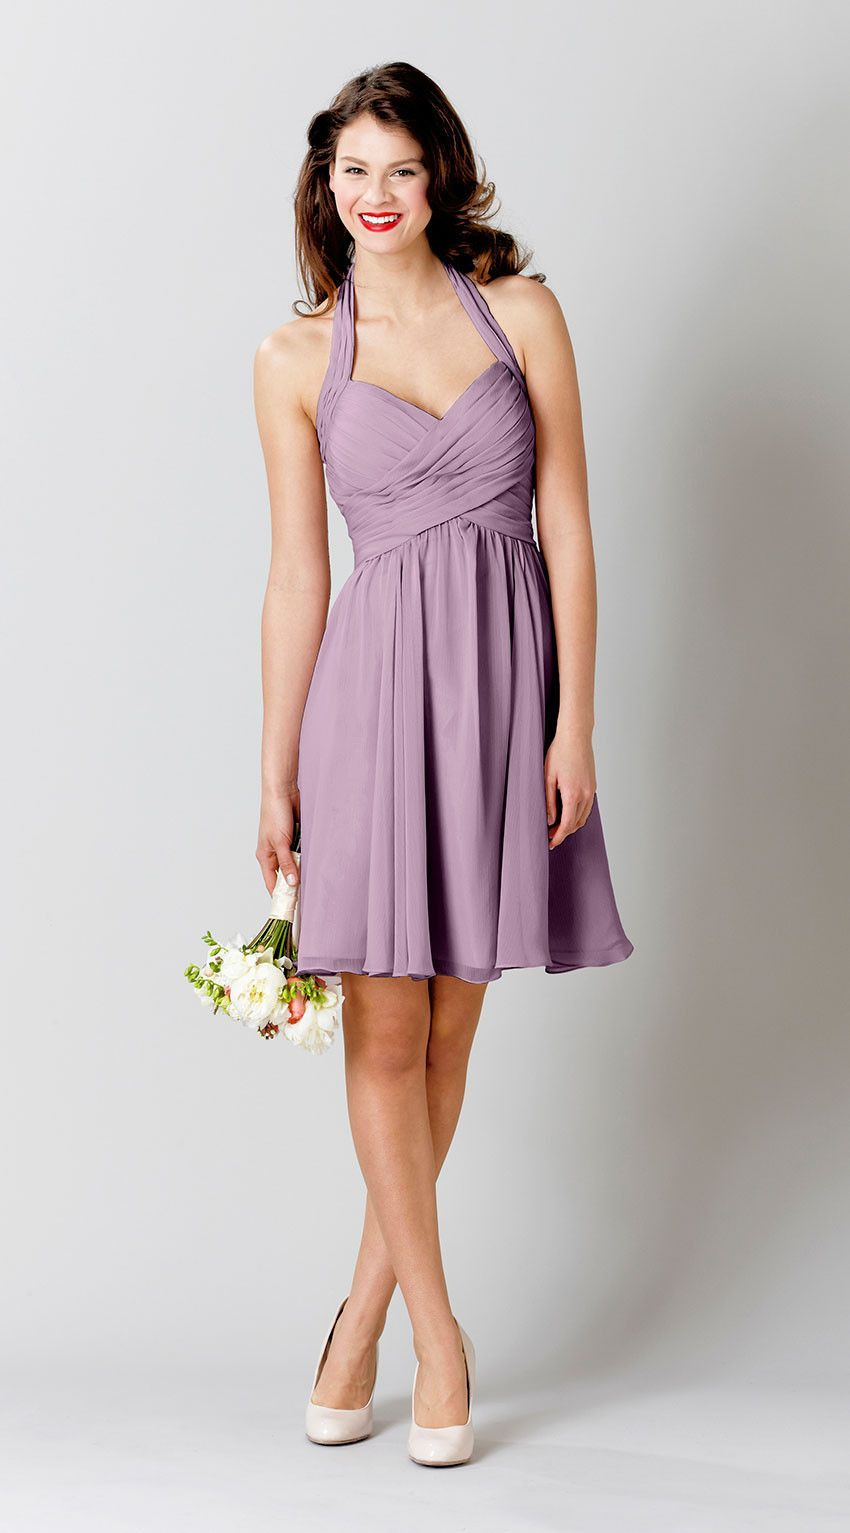 Lucy | Chiffon bridesmaid dresses, Wedding and Bridal gowns